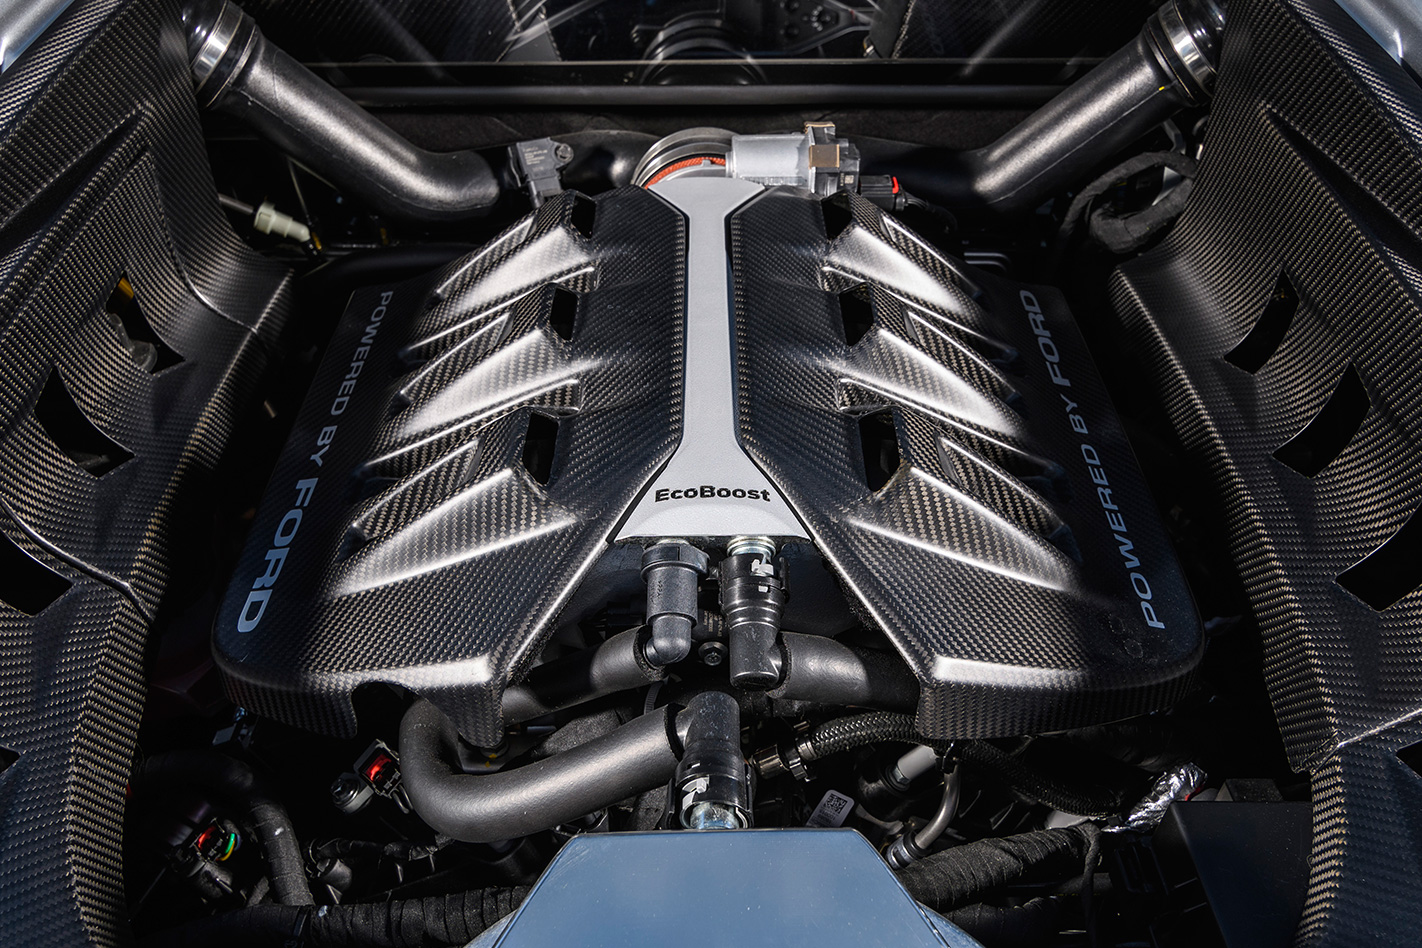 2017 Ford Mustang GT engine